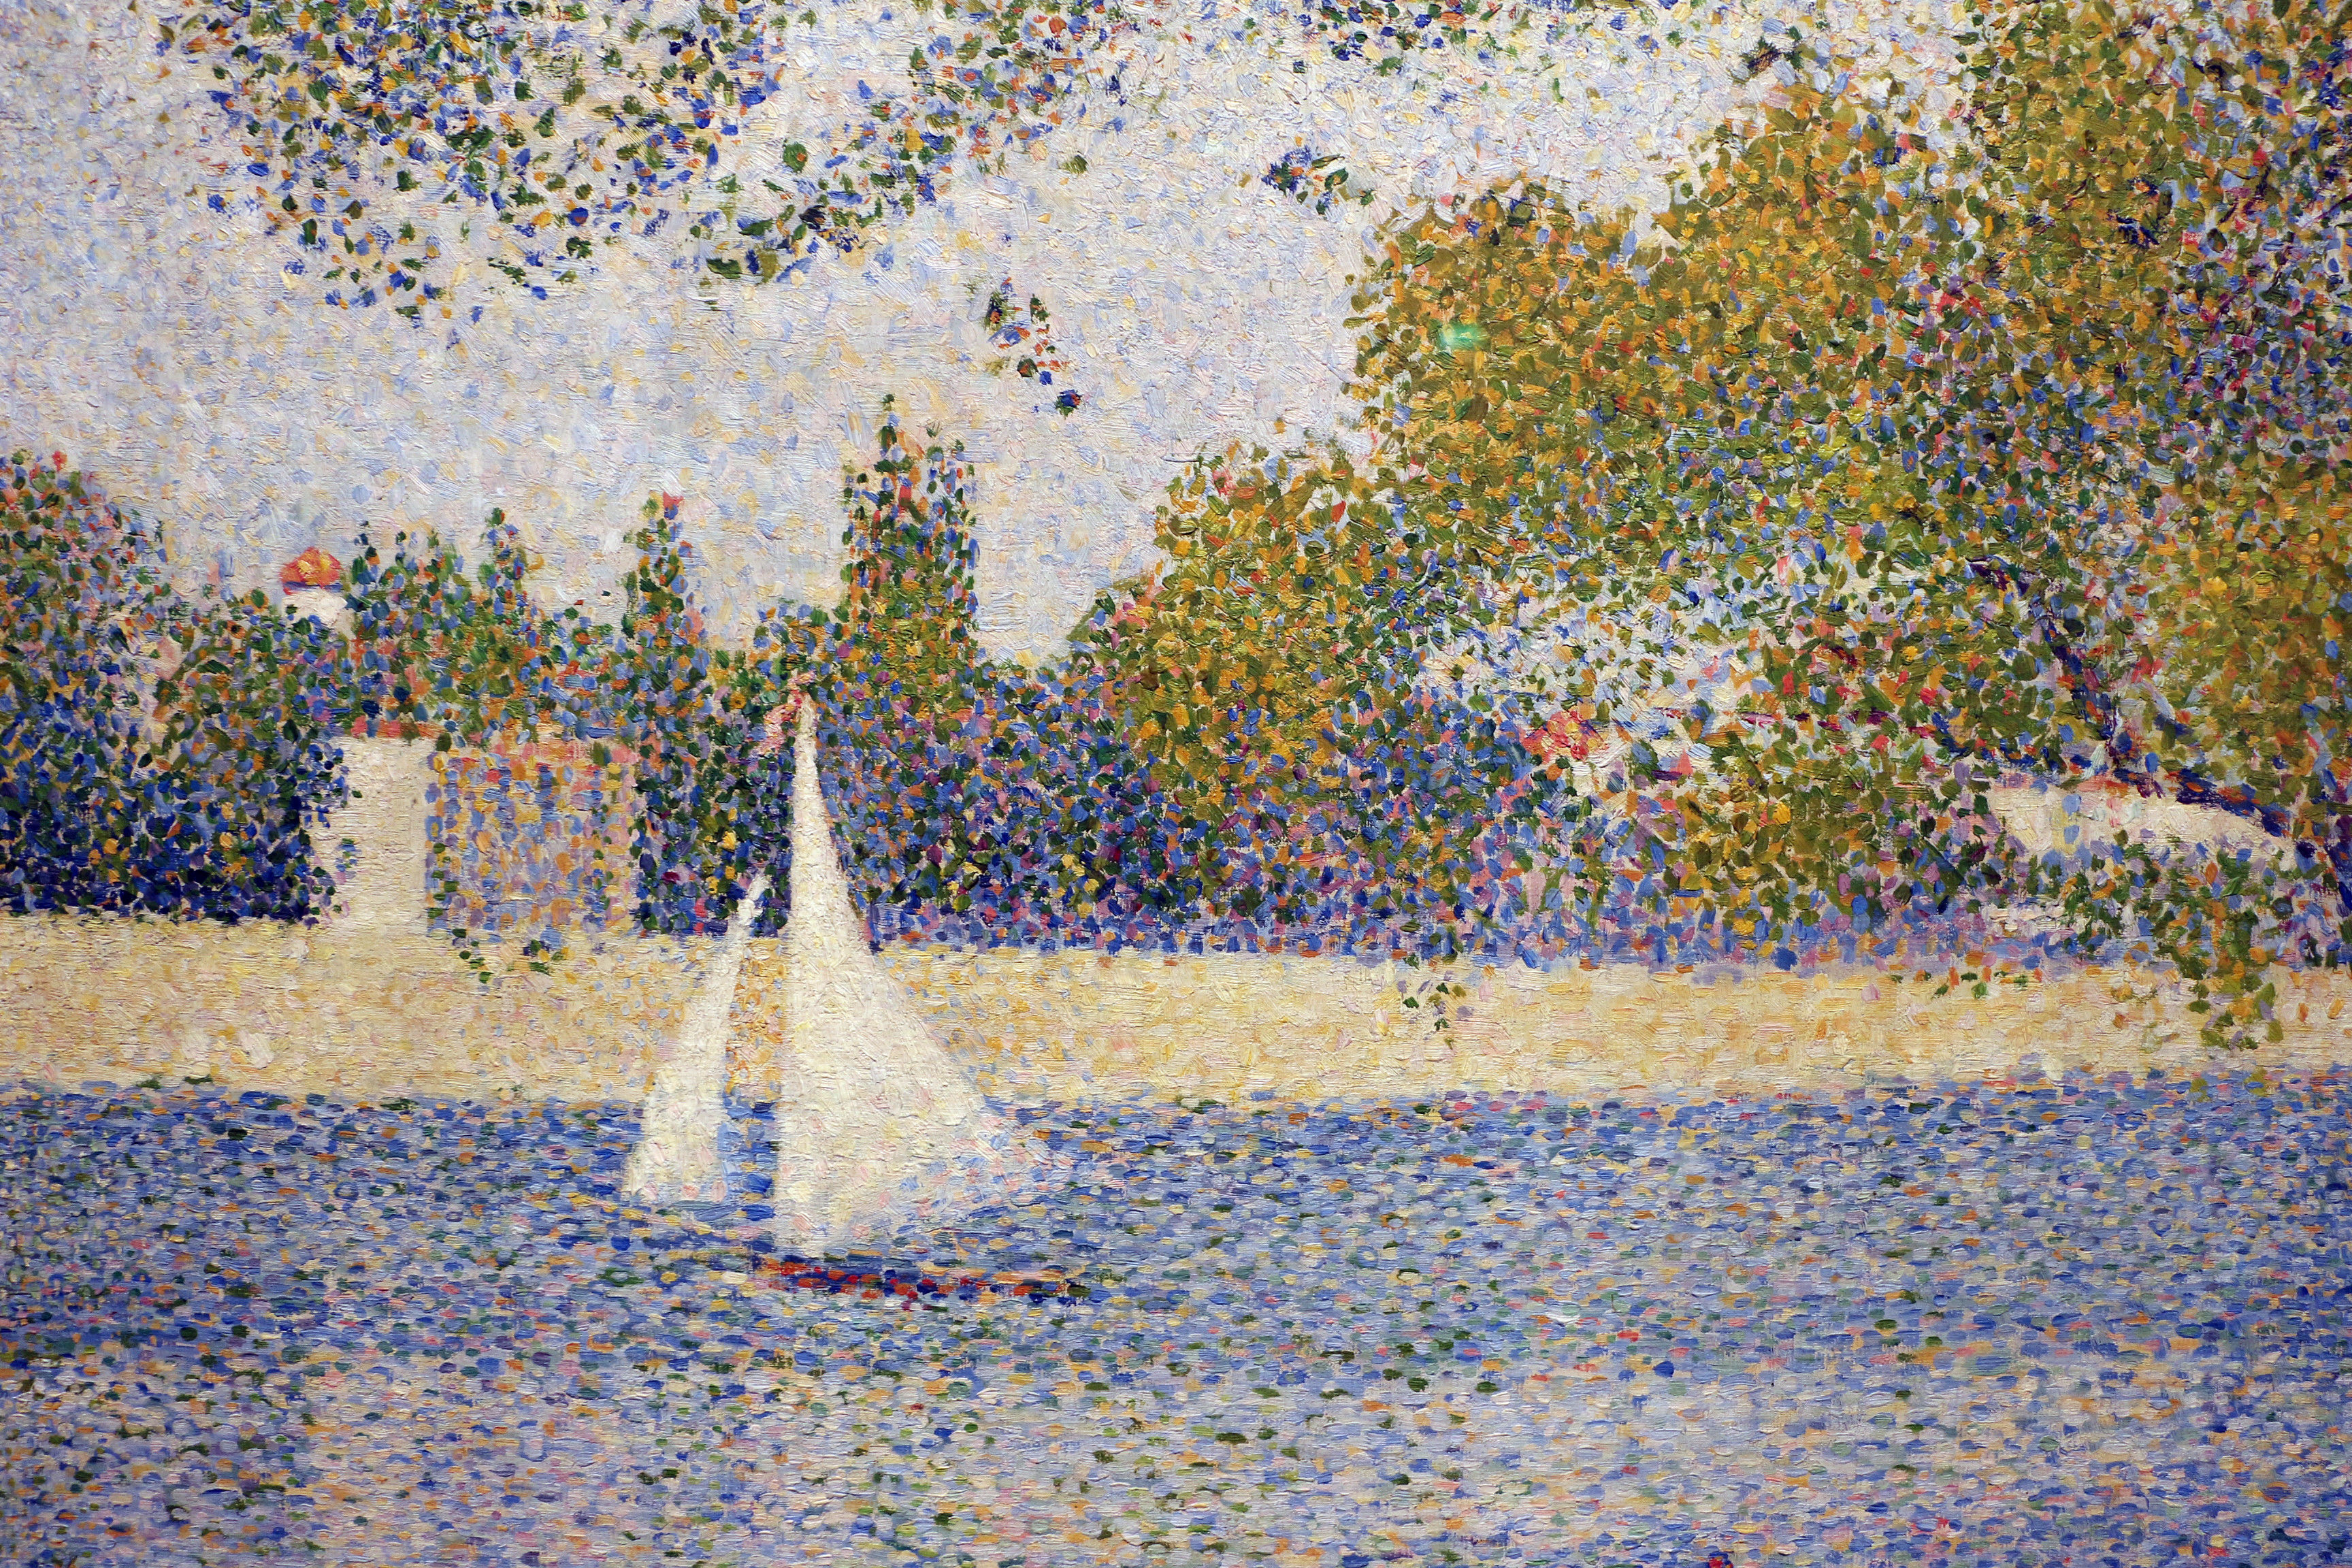 Abstract painting by Georges Seurat (1859-1891) The Seine at the Grand Jatte Spring 1888